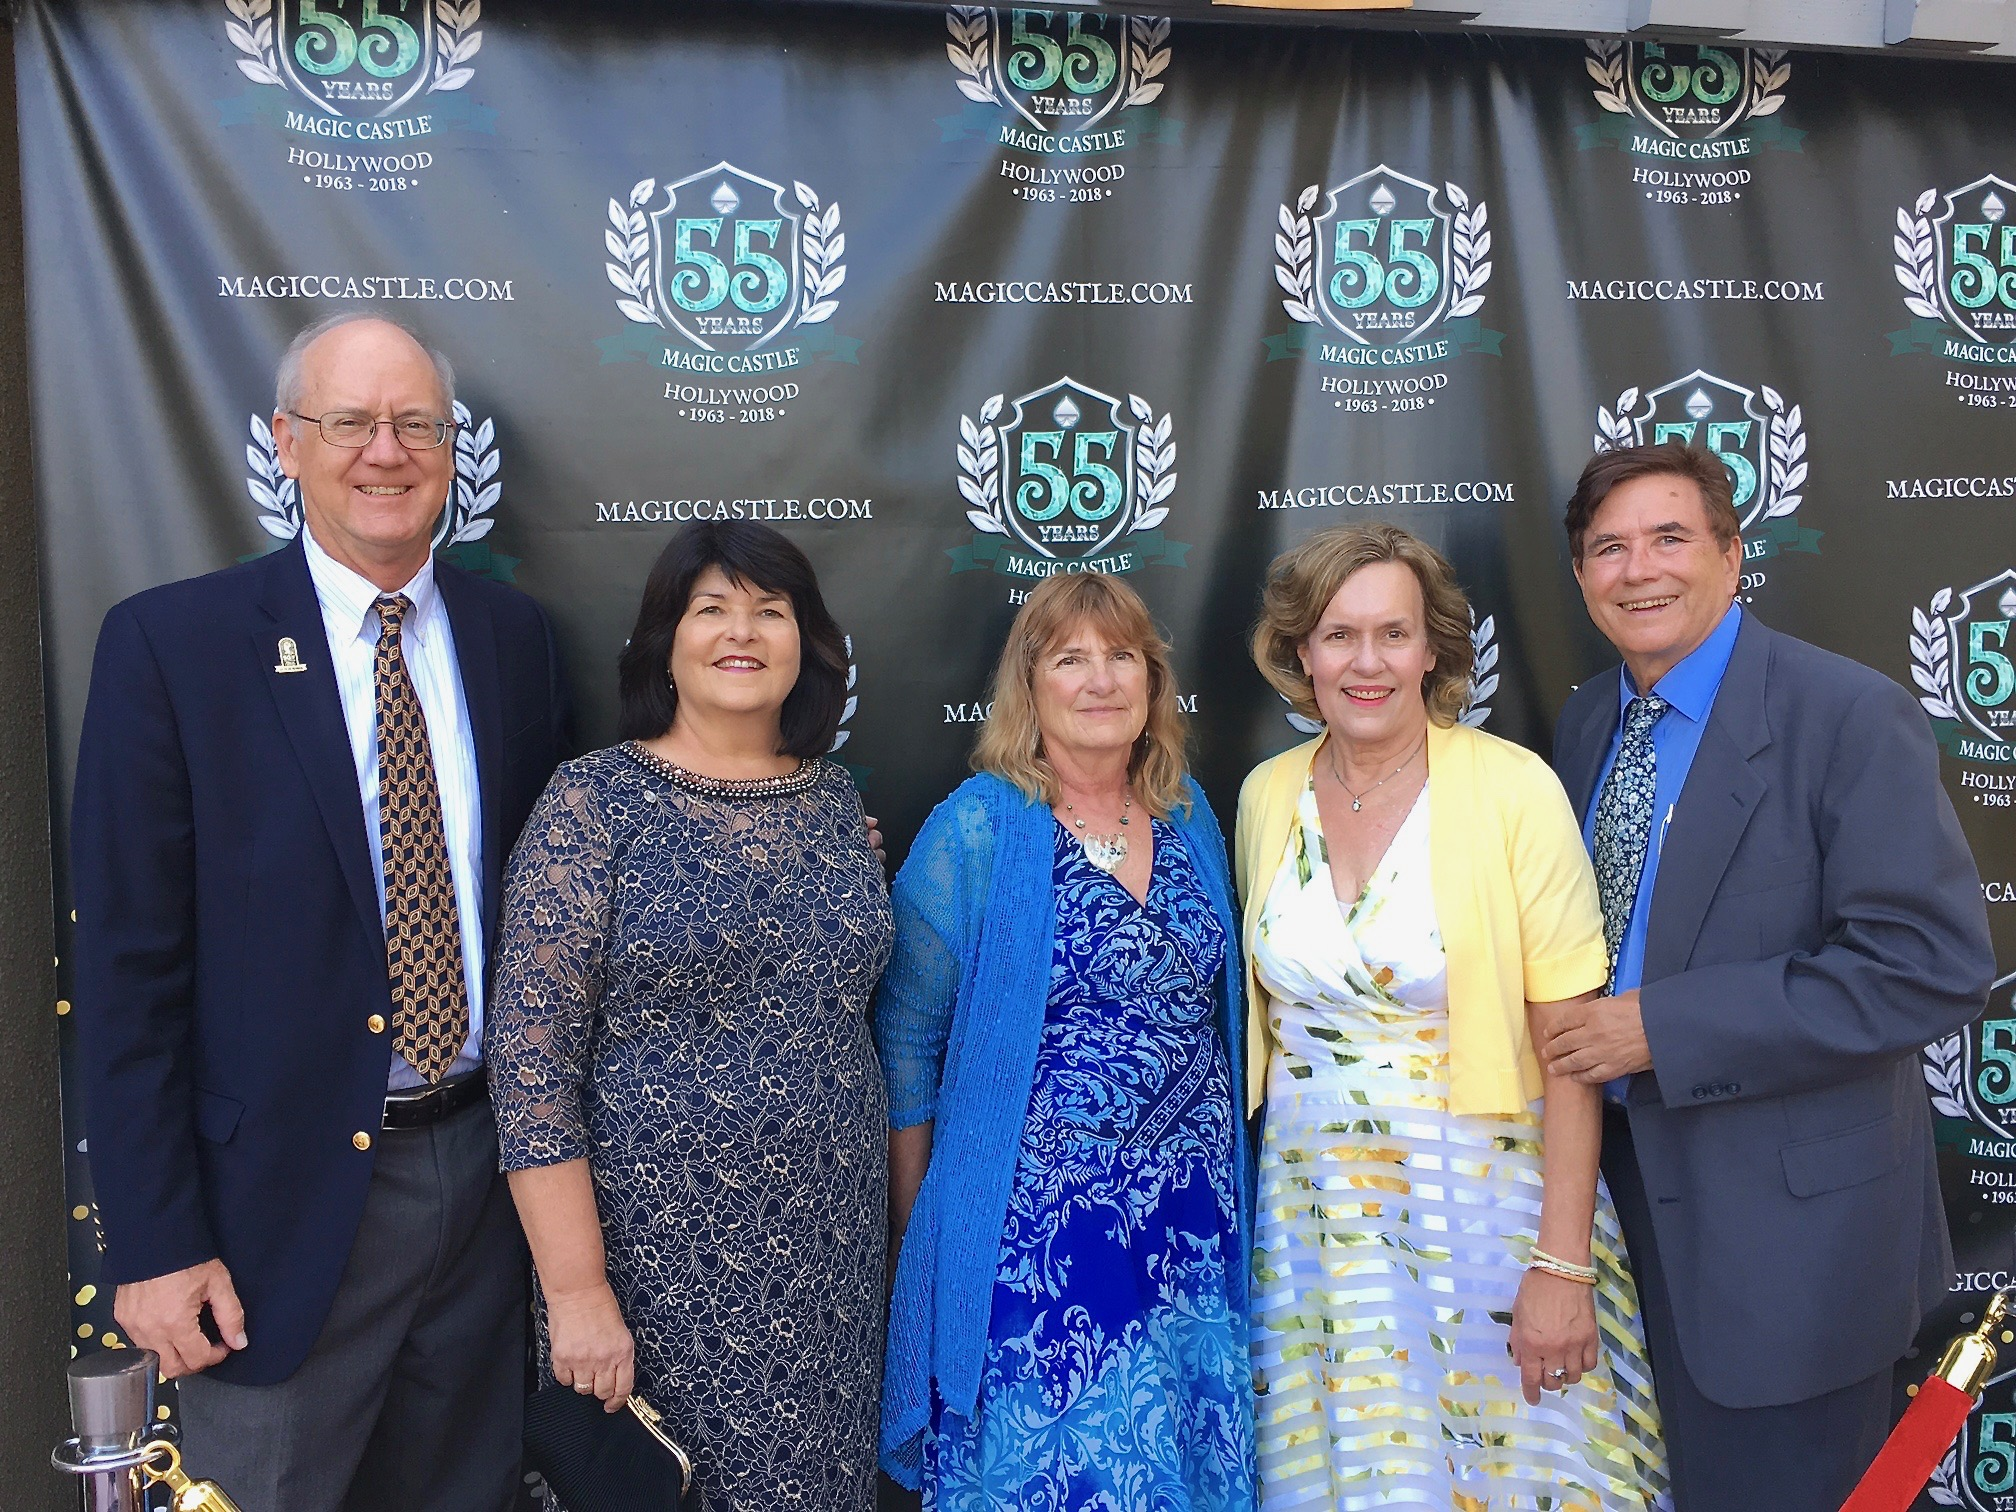 Dave, Laura, Carol, Lorraine Gudas, & John Wagner, at the Magic Castle, LA, Aug. 2018